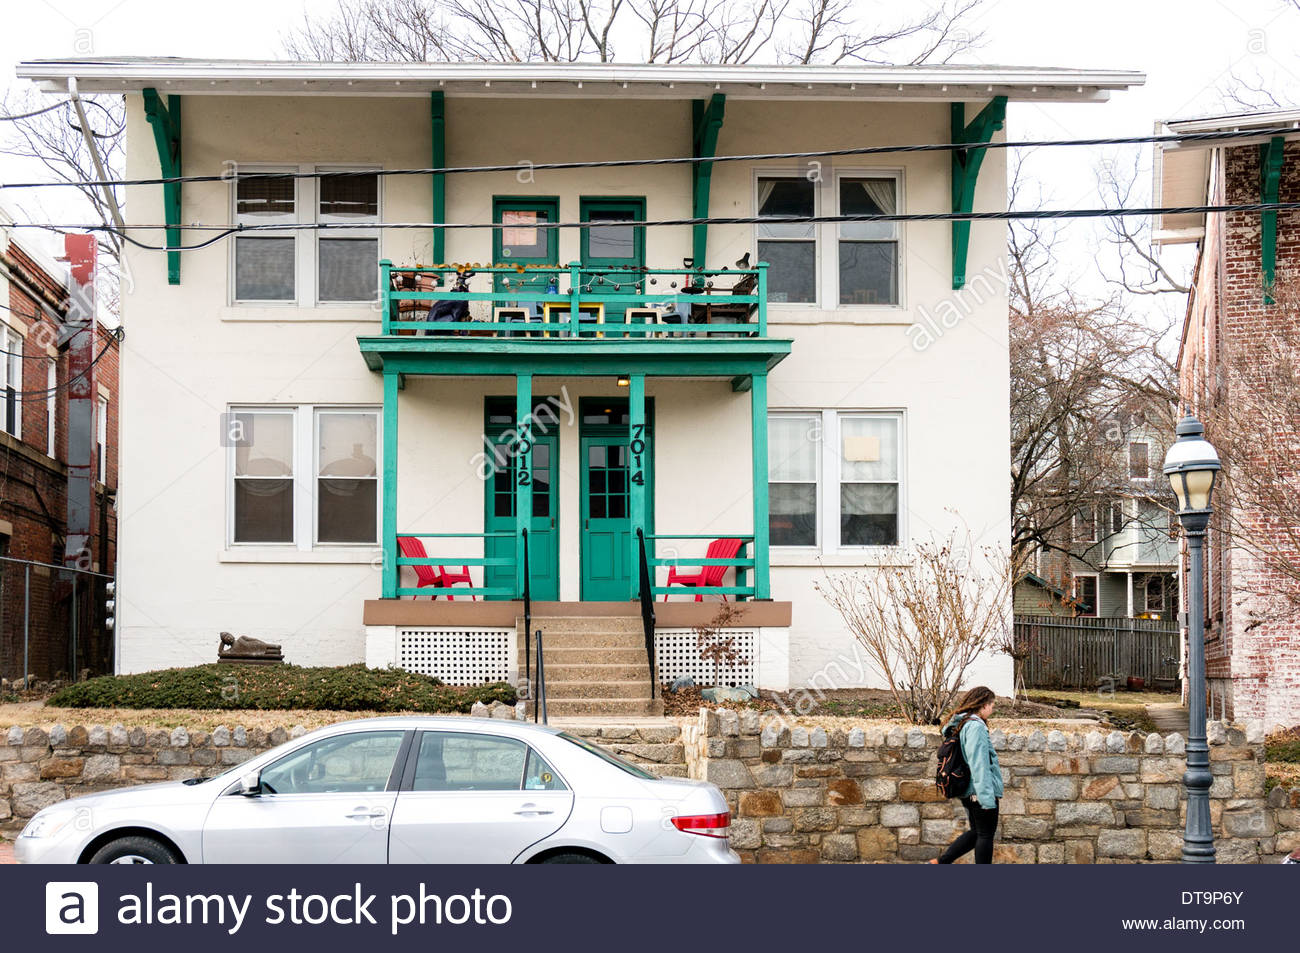 A young woman walks by a duplex house along Carroll Avenue in Takoma Park, Maryland - Stock Image